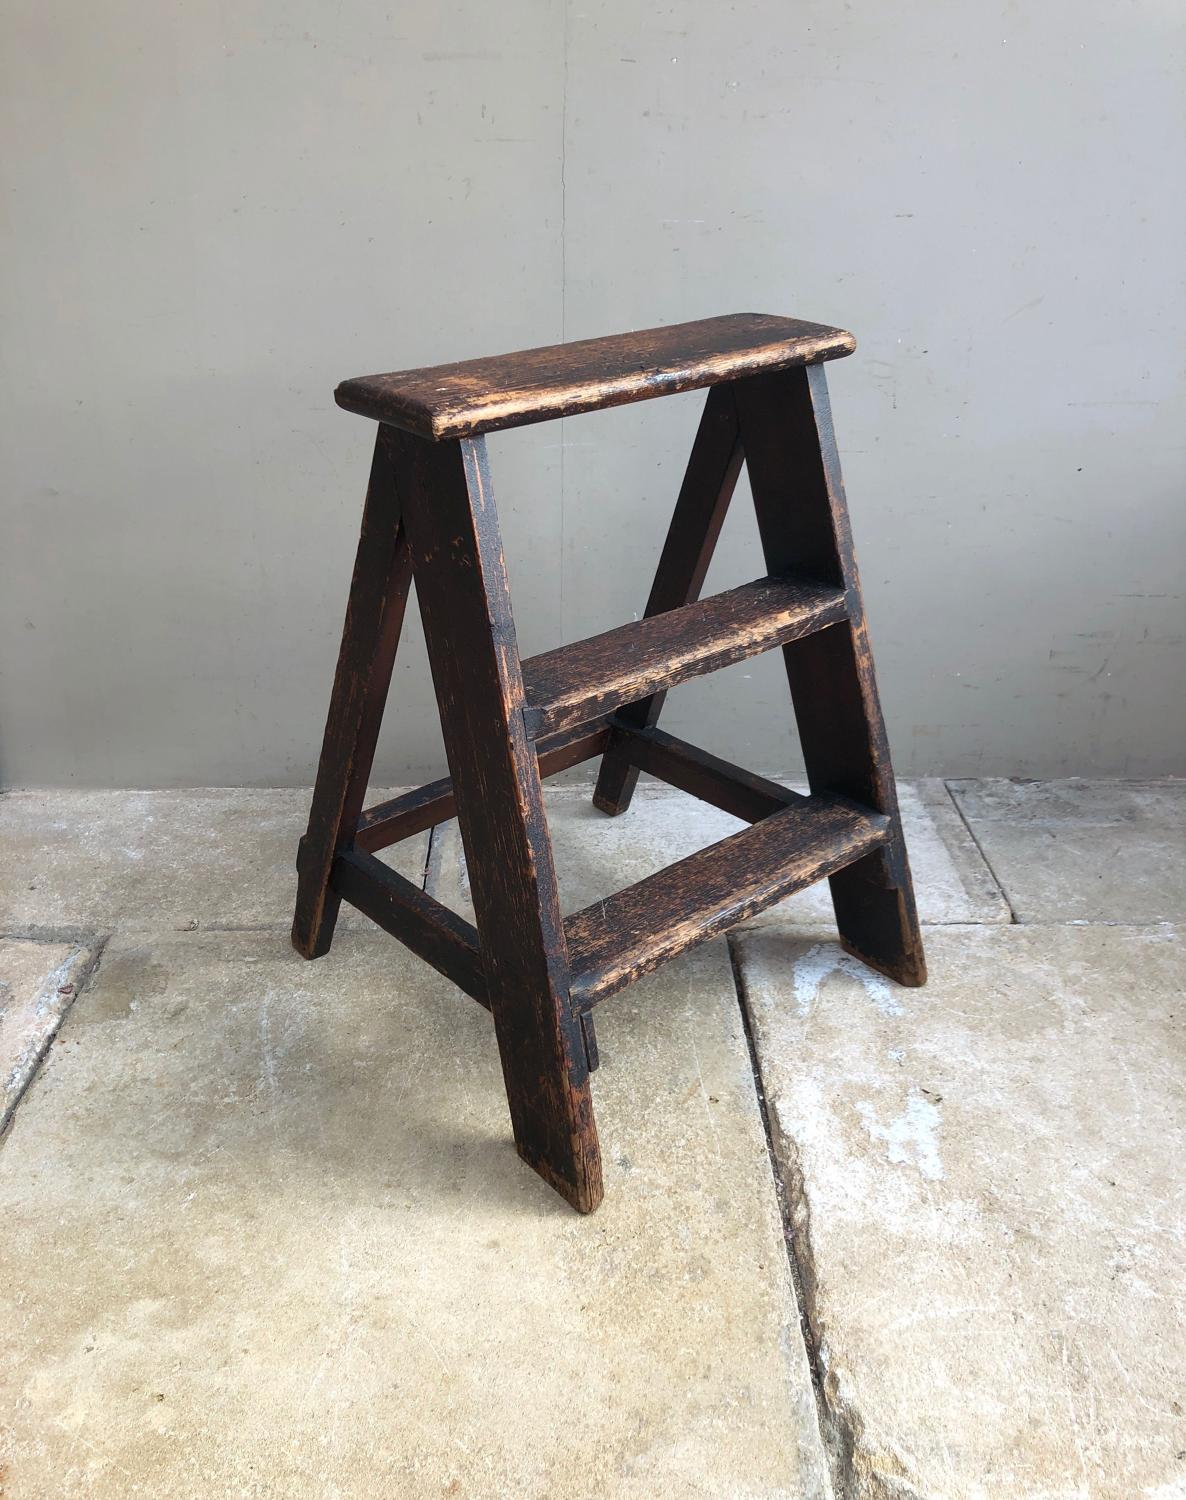 Early 20th Century Pine Steps - Great Shop Display - Original Paint